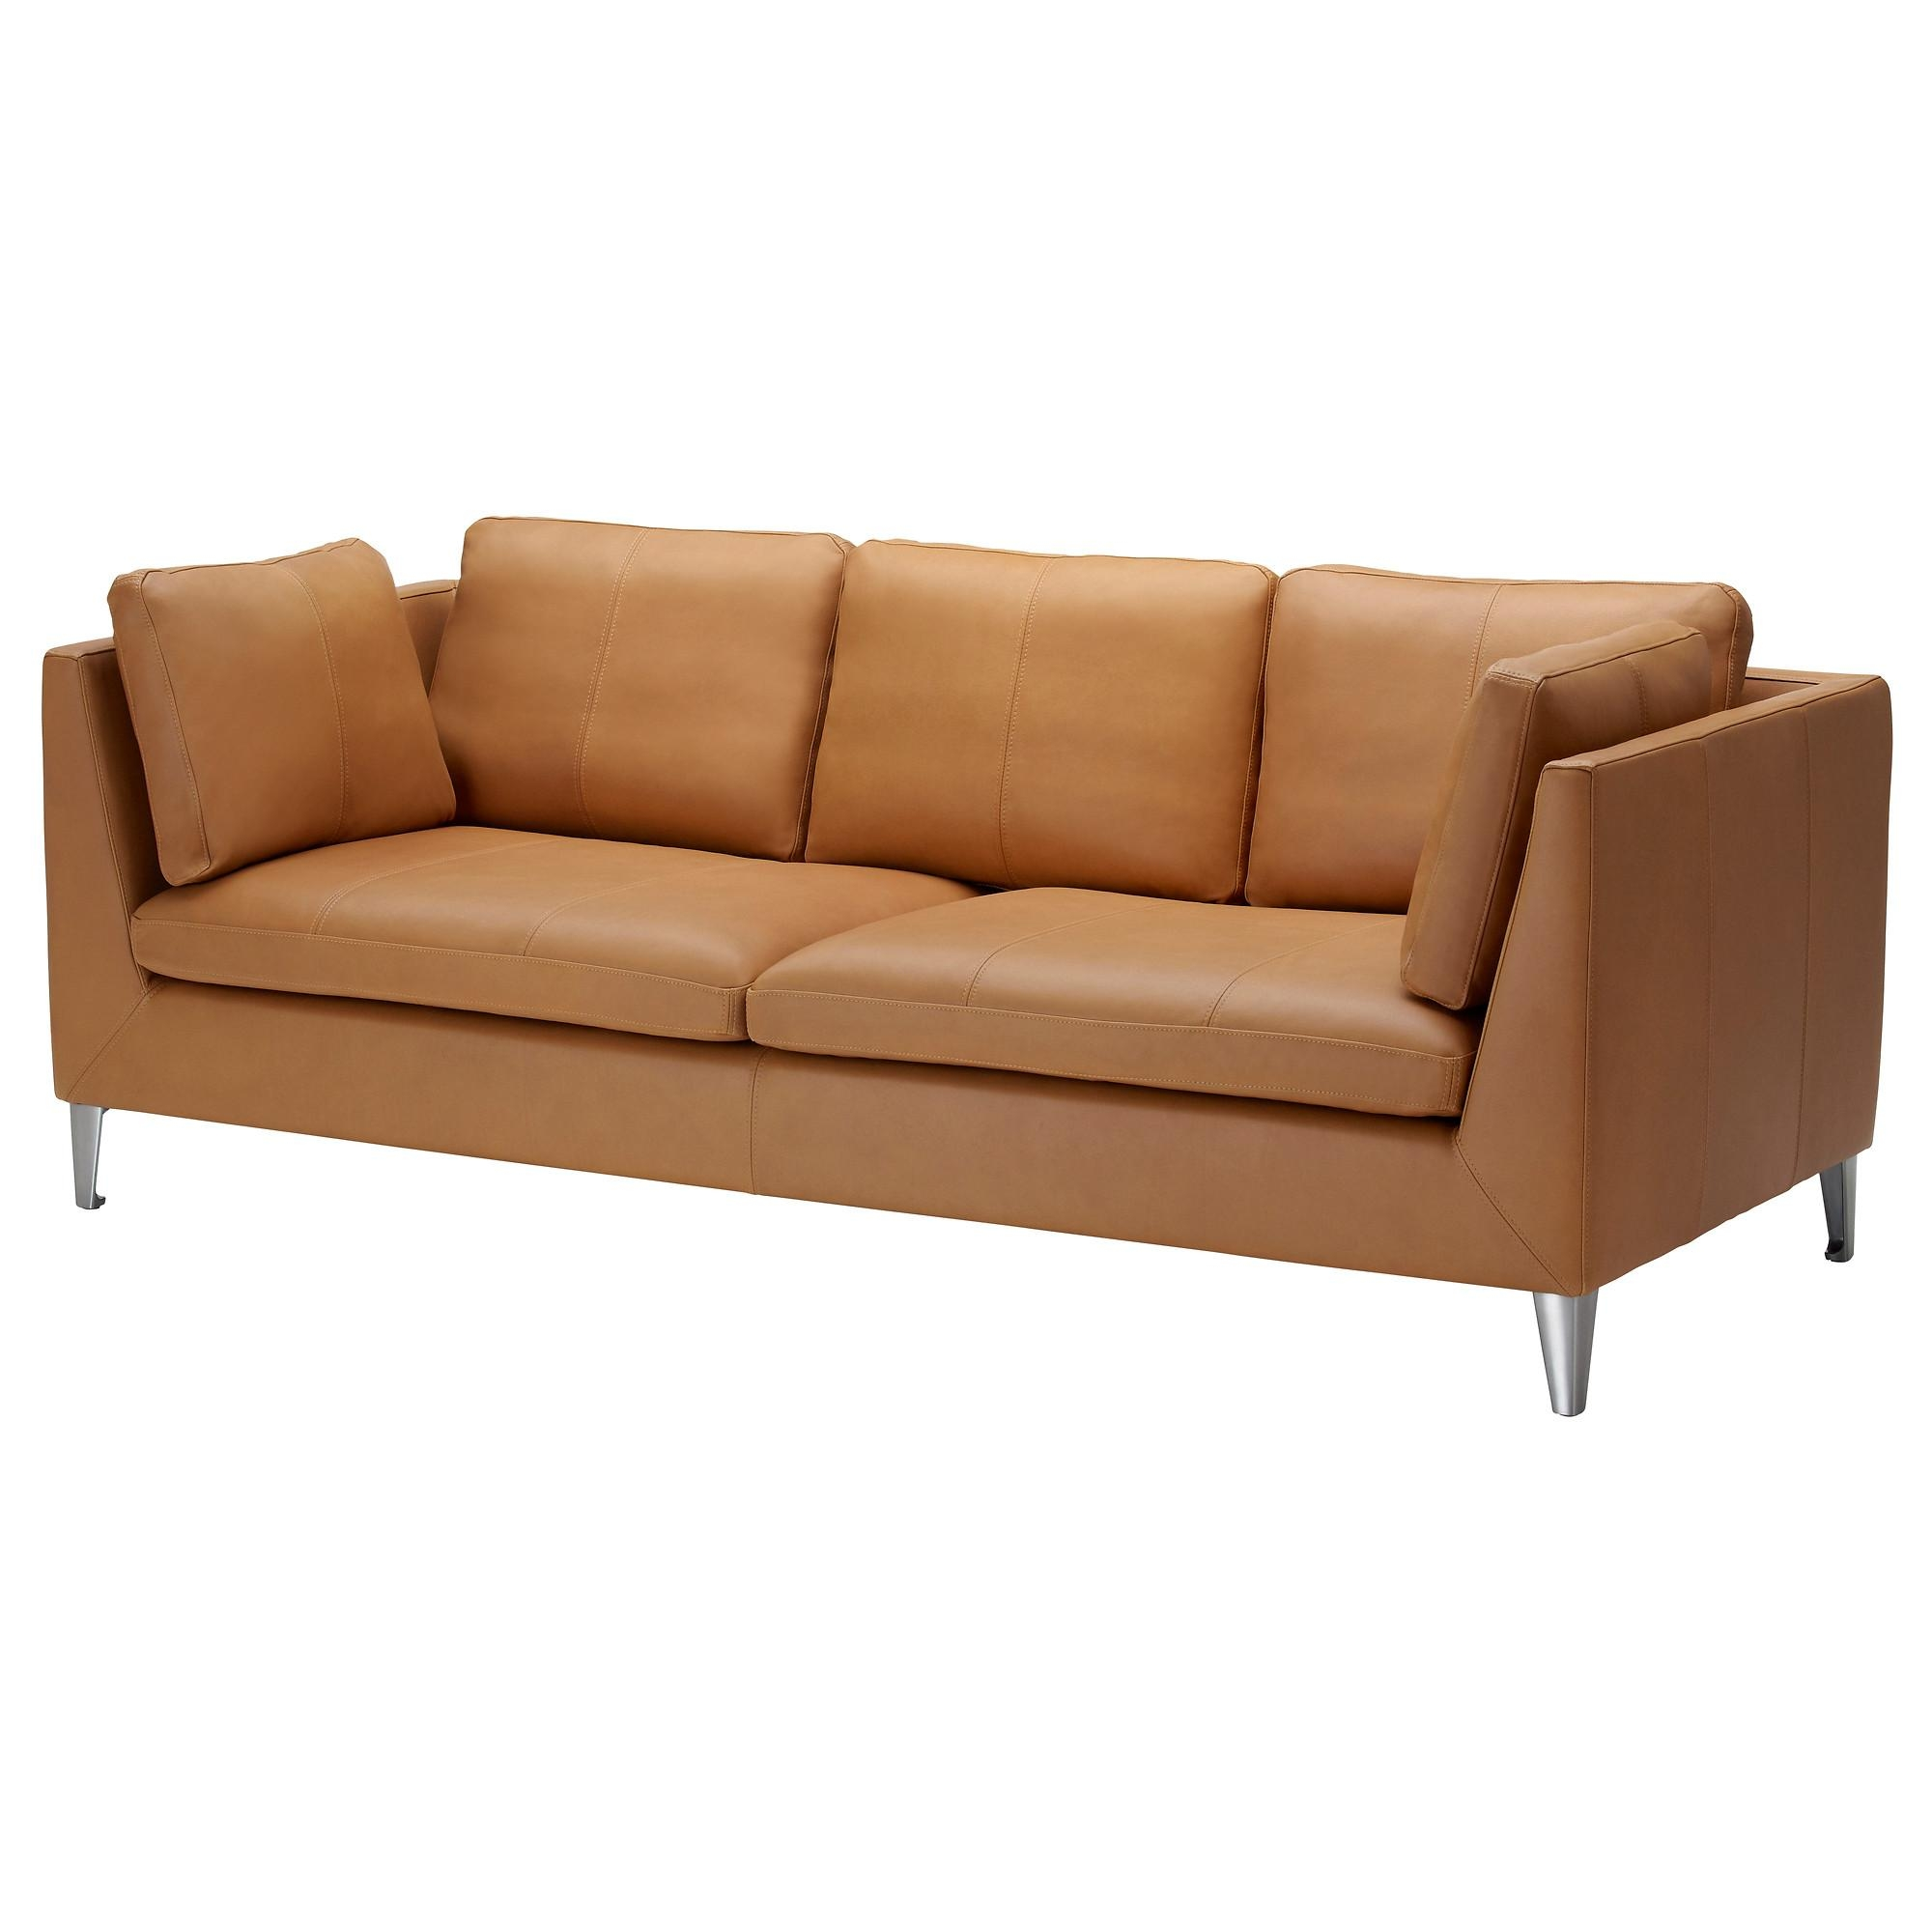 Stockholm Sofa – Seglora Natural – Ikea With Orange Ikea Sofas (View 3 of 20)